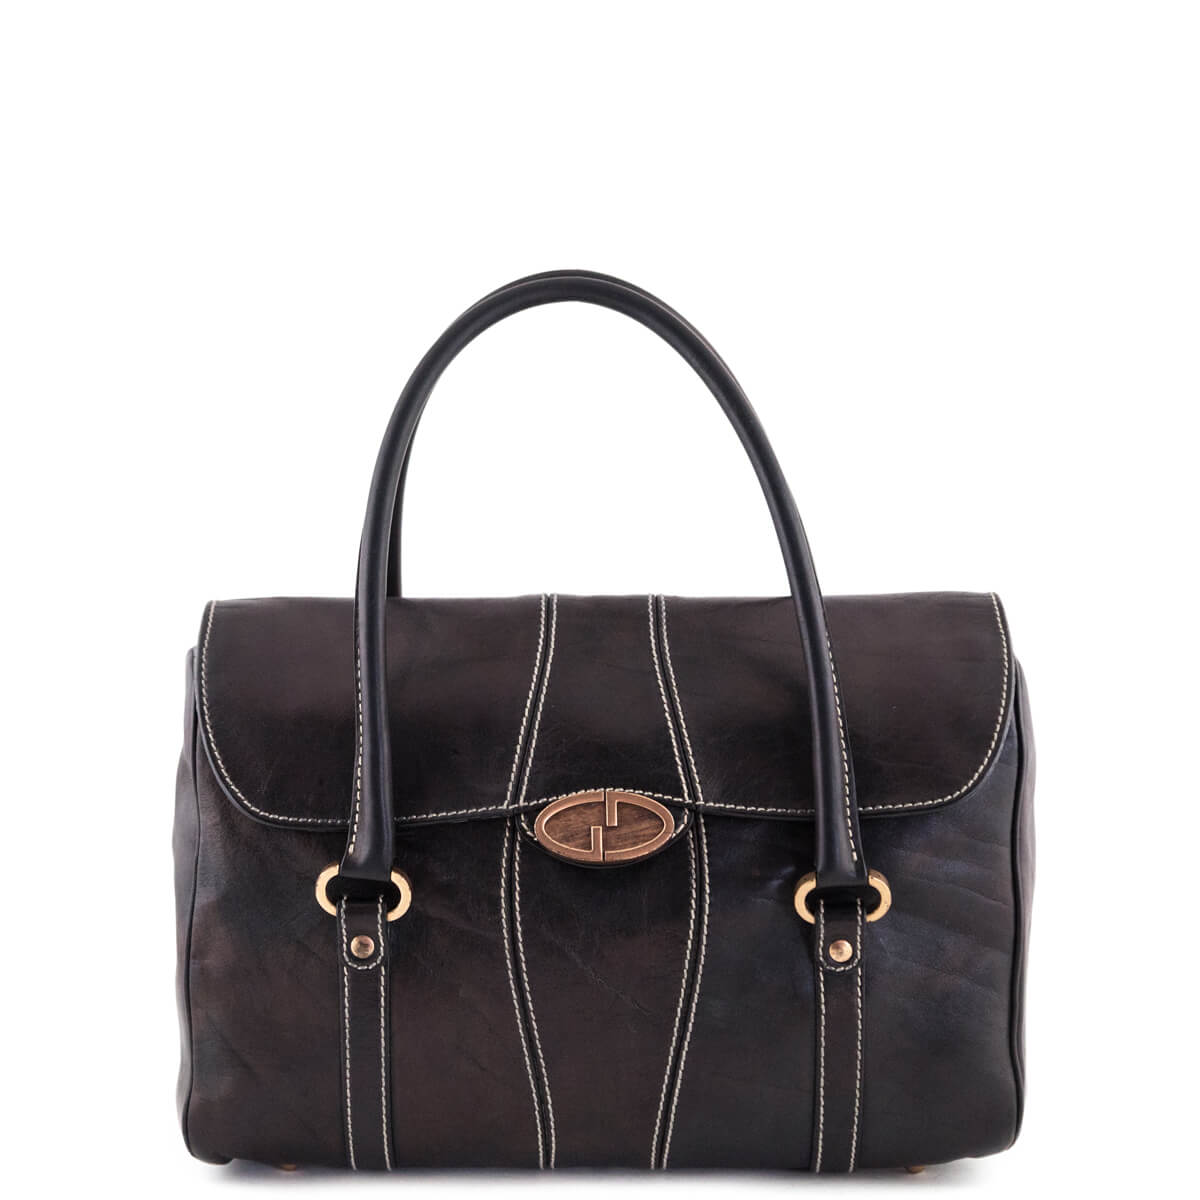 Gucci Brown Leather Flap Topstitch Handbag - LOVE that BAG - Preowned  Authentic Designer Handbags ... dab9b92af8